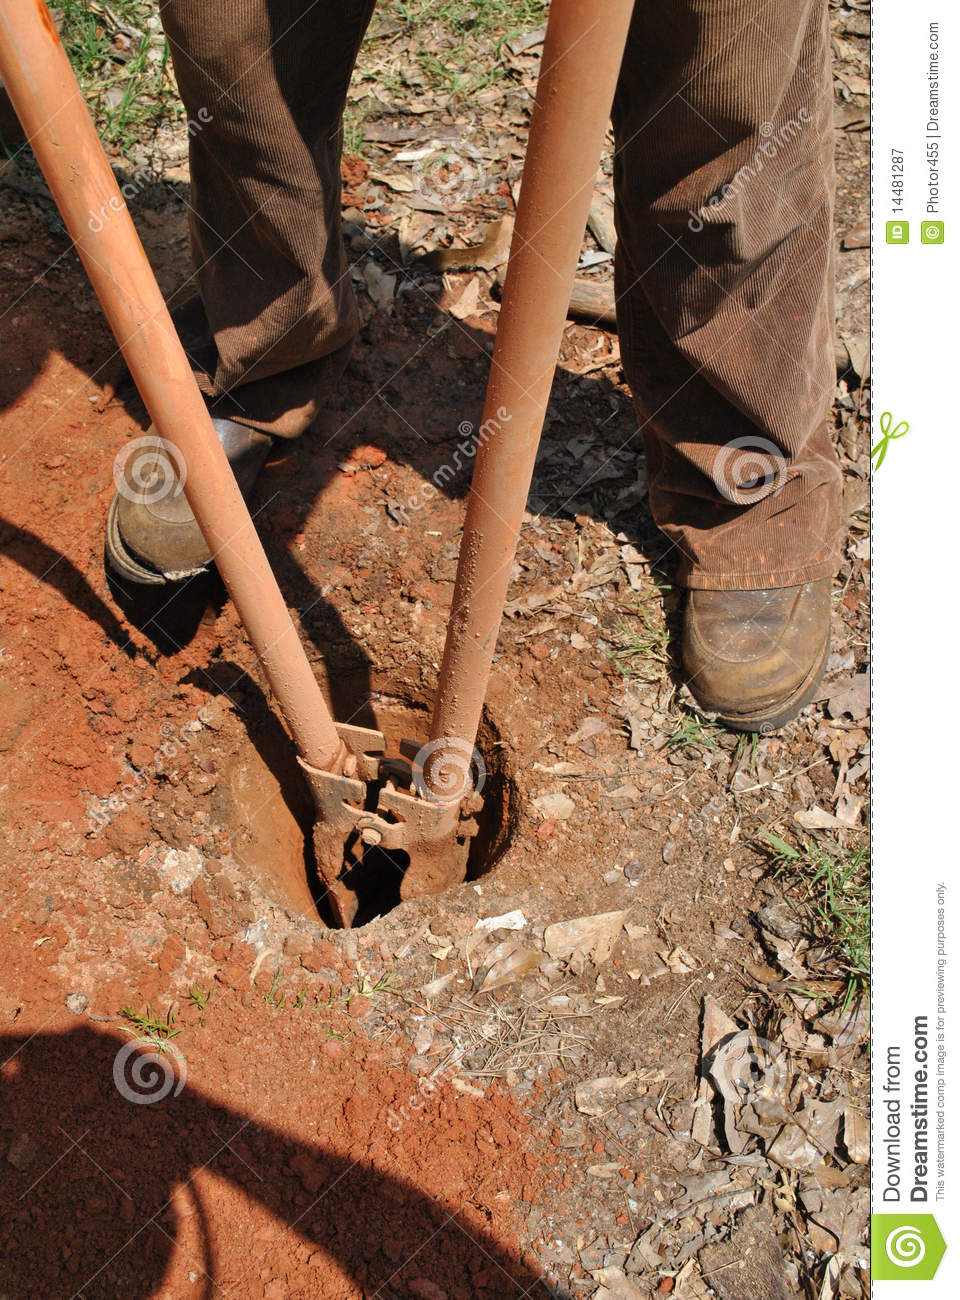 Digging post holes royalty free stock photography image for Digging ground dream meaning